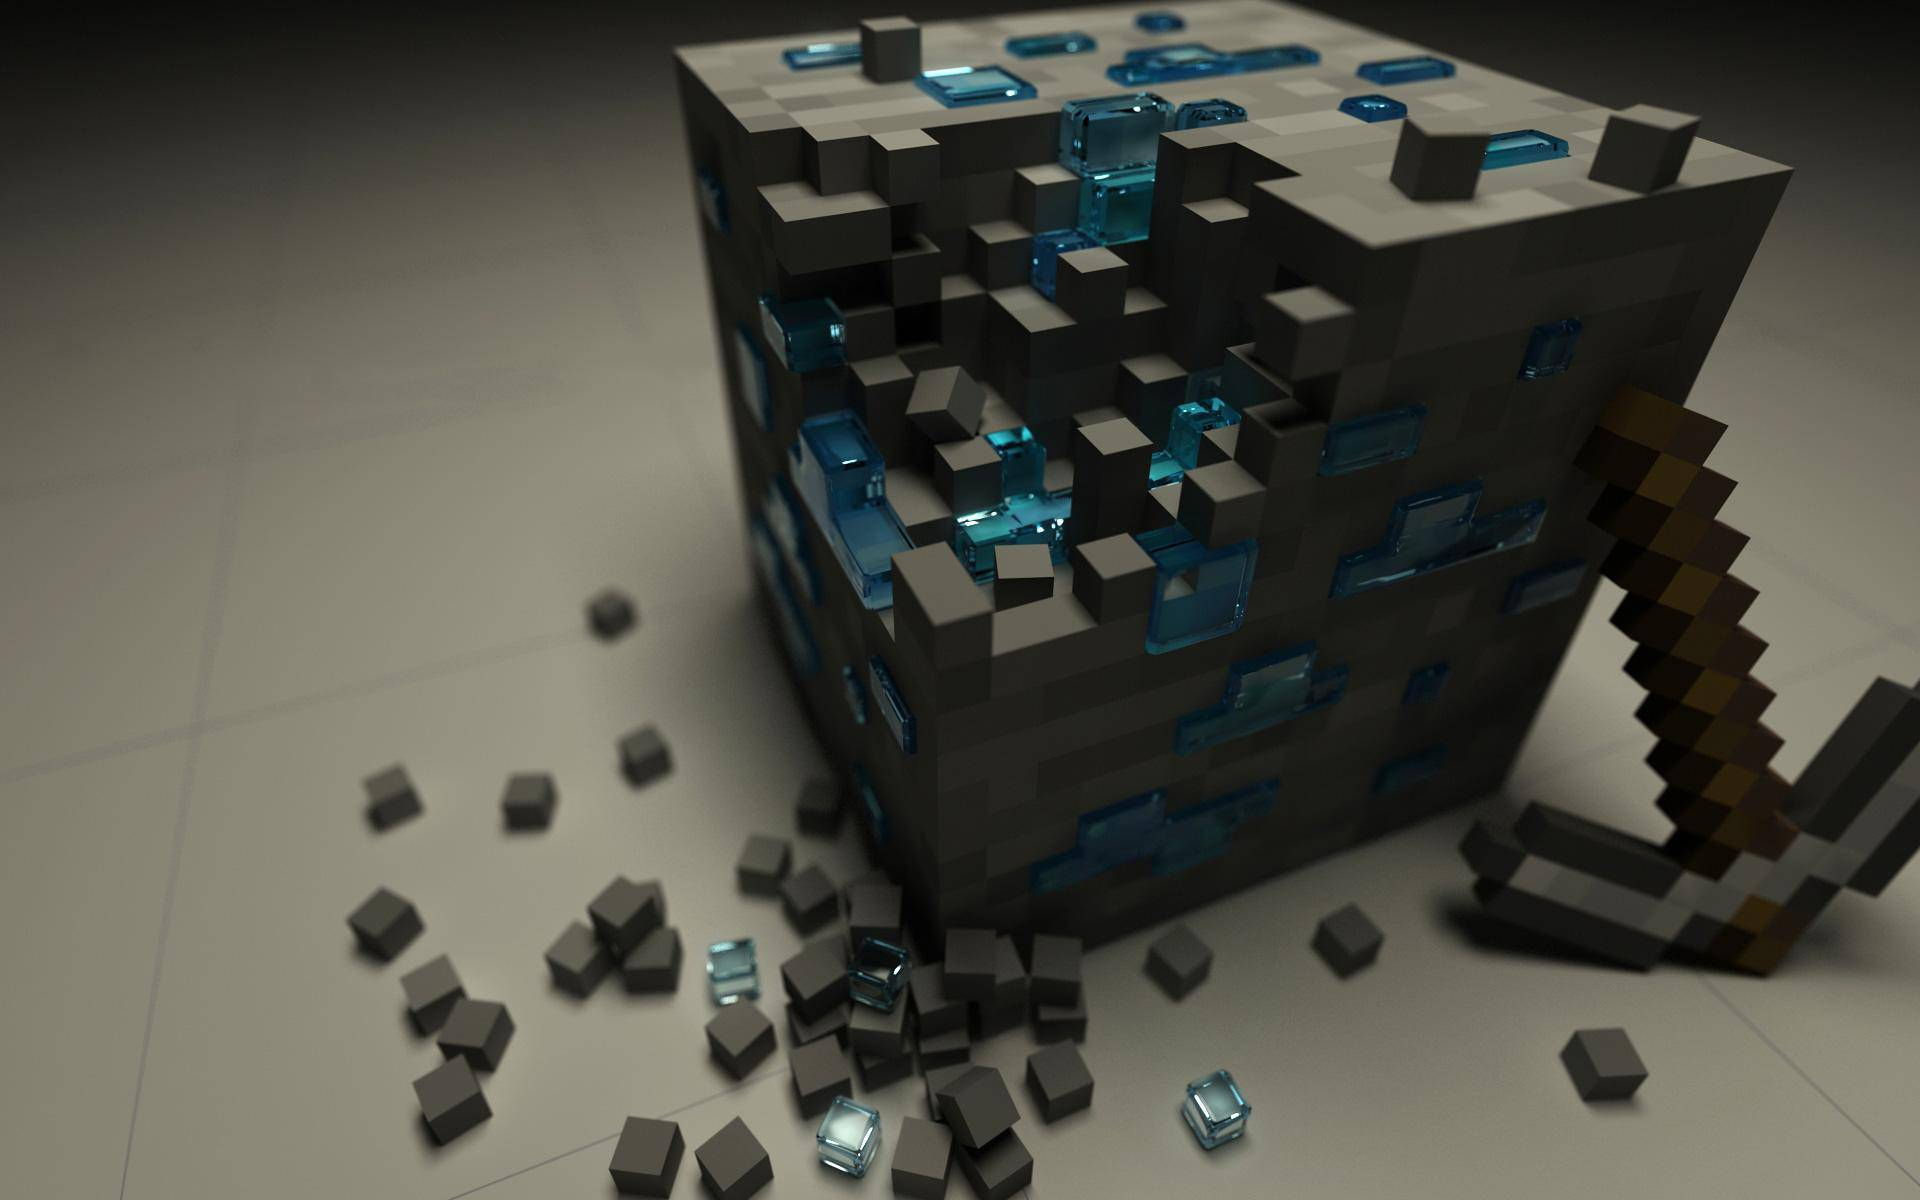 Cool-Minecraft-Desktop-Background-1920×1080-Minecraft-Download-wallpaper-wp3604327